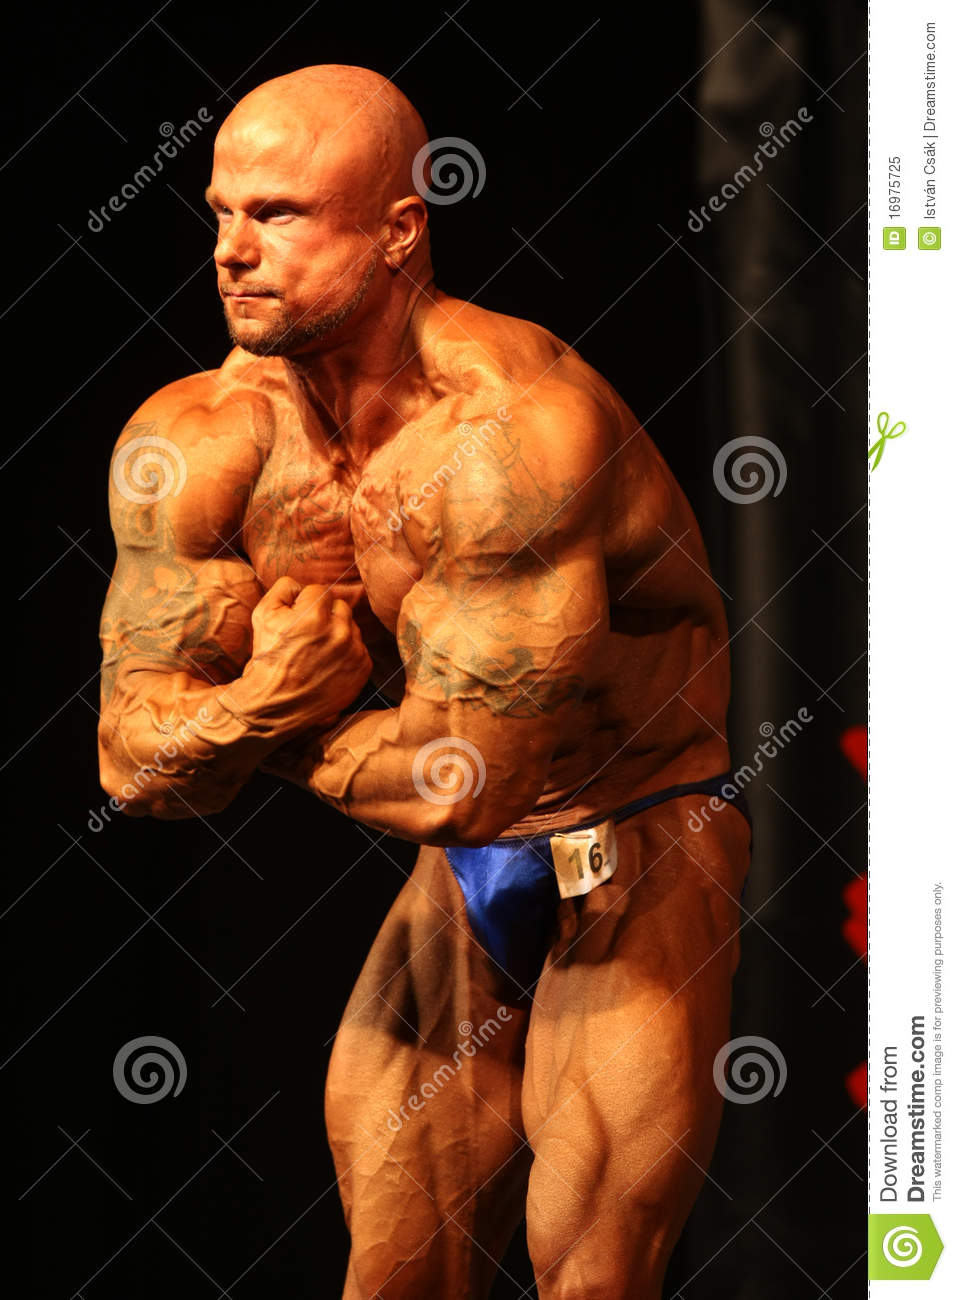 IBFF Bodybuilding World Championship Editorial Image